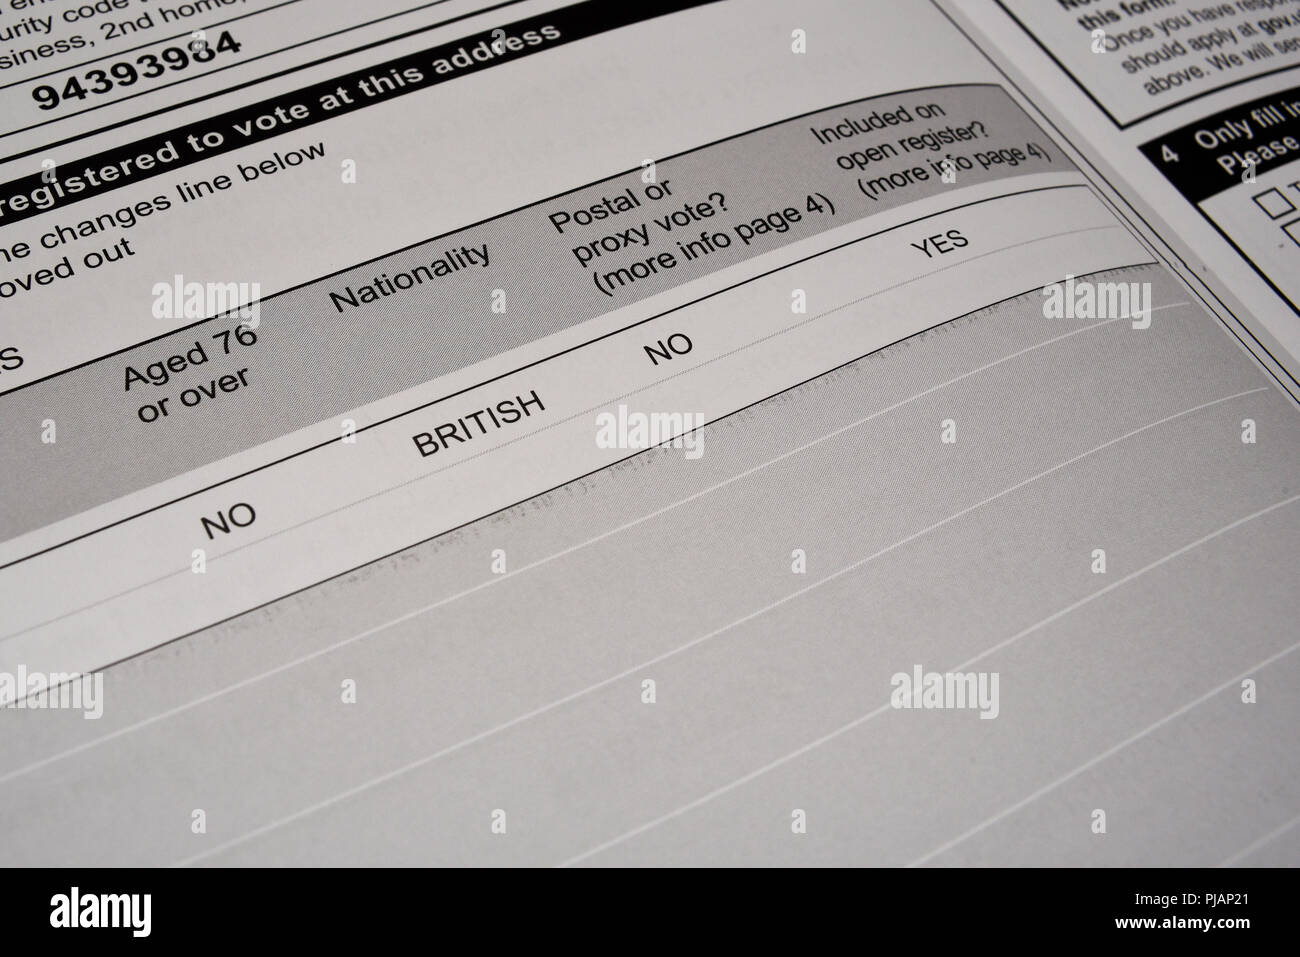 Electoral register form for UK British citizens. Register to vote in elections. Eligible to vote. Nationality British. Open register. British citizen - Stock Image